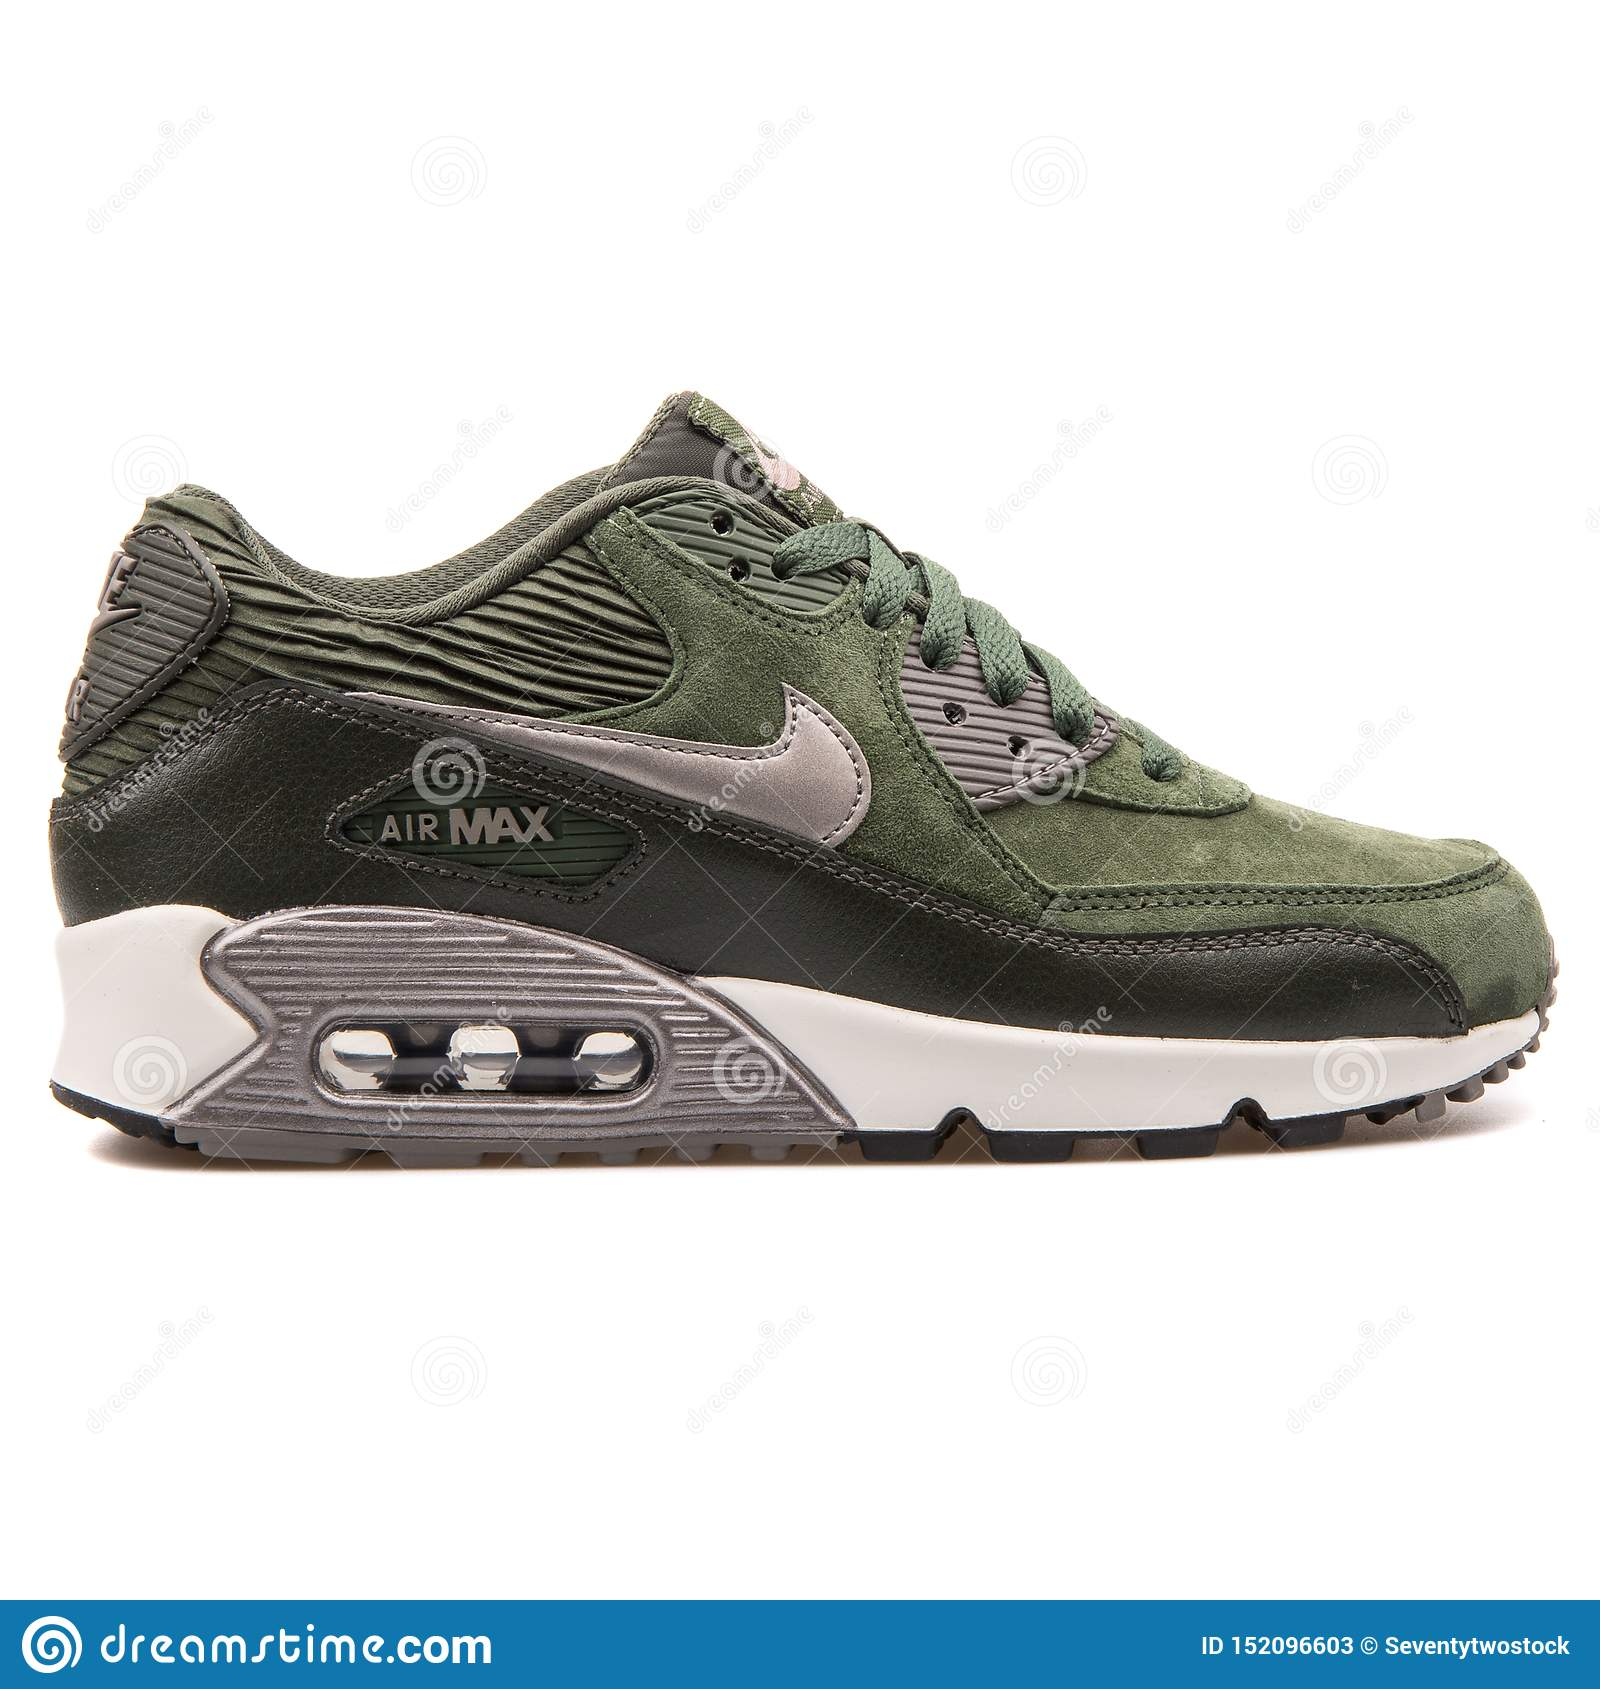 Nike Air Max 90 Leather Green, Black and Metallic Silver Sneaker ...